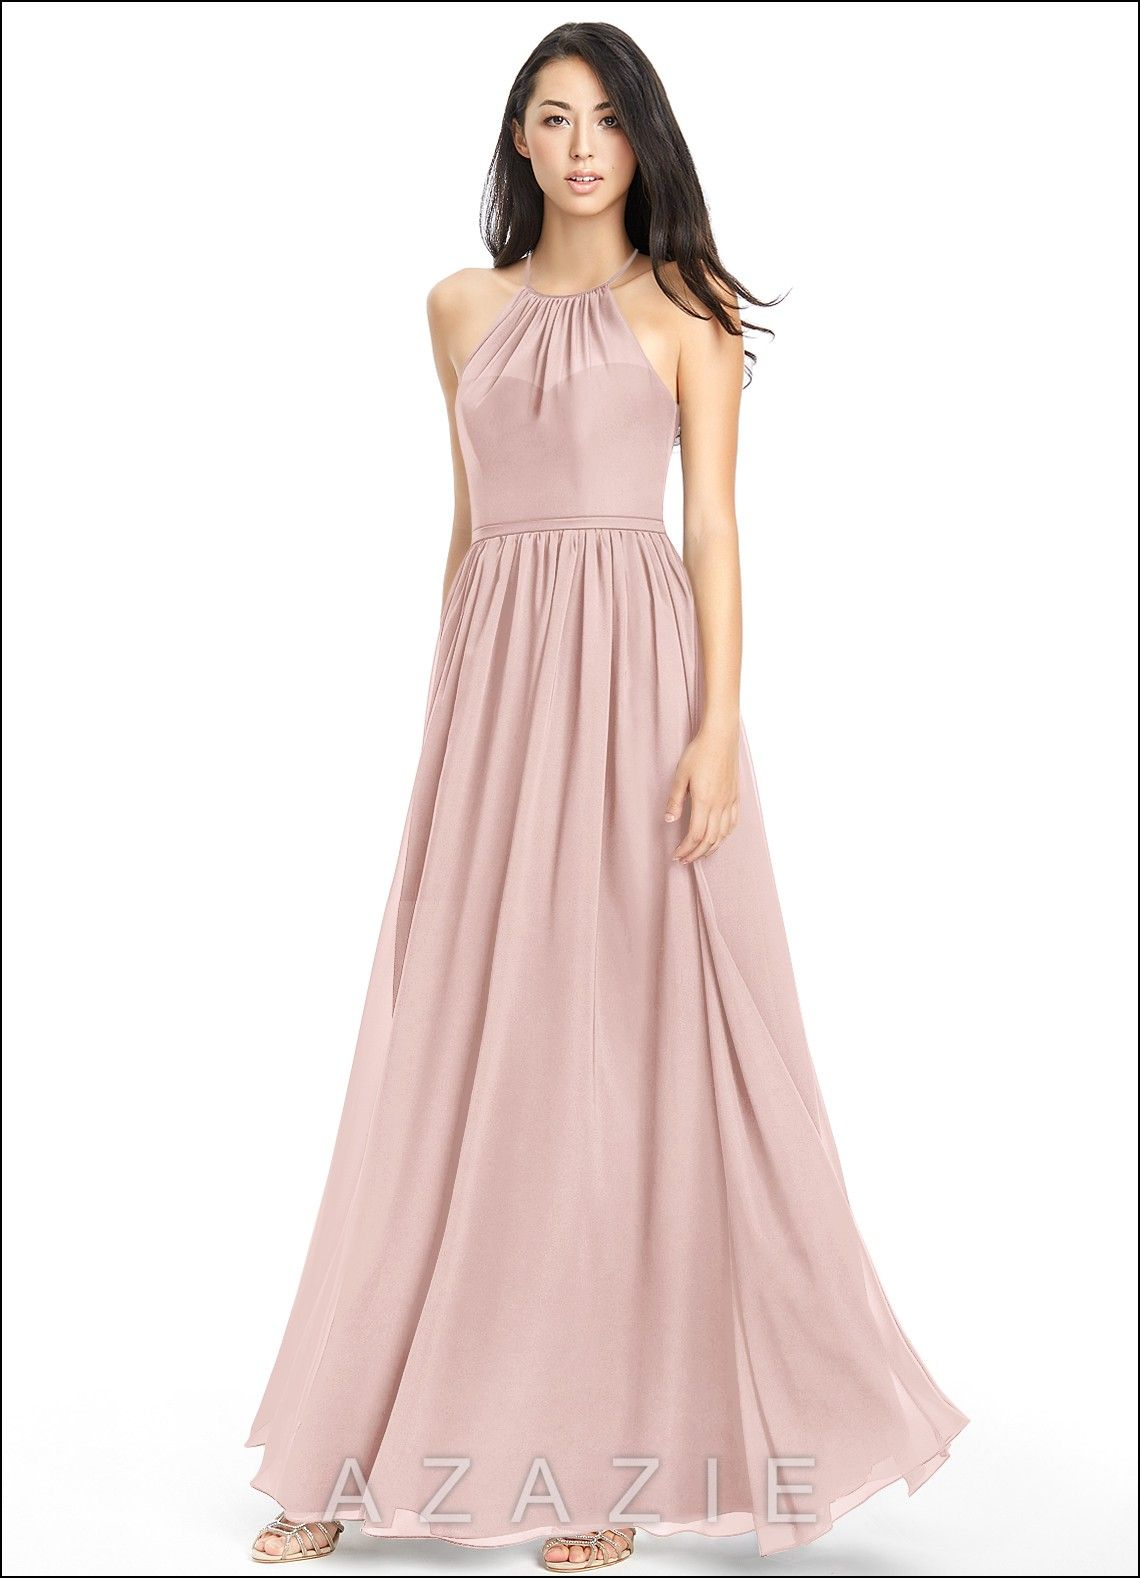 Dusty Rose Colored Bridesmaid Dresses | Dresses and Gowns Ideas ...